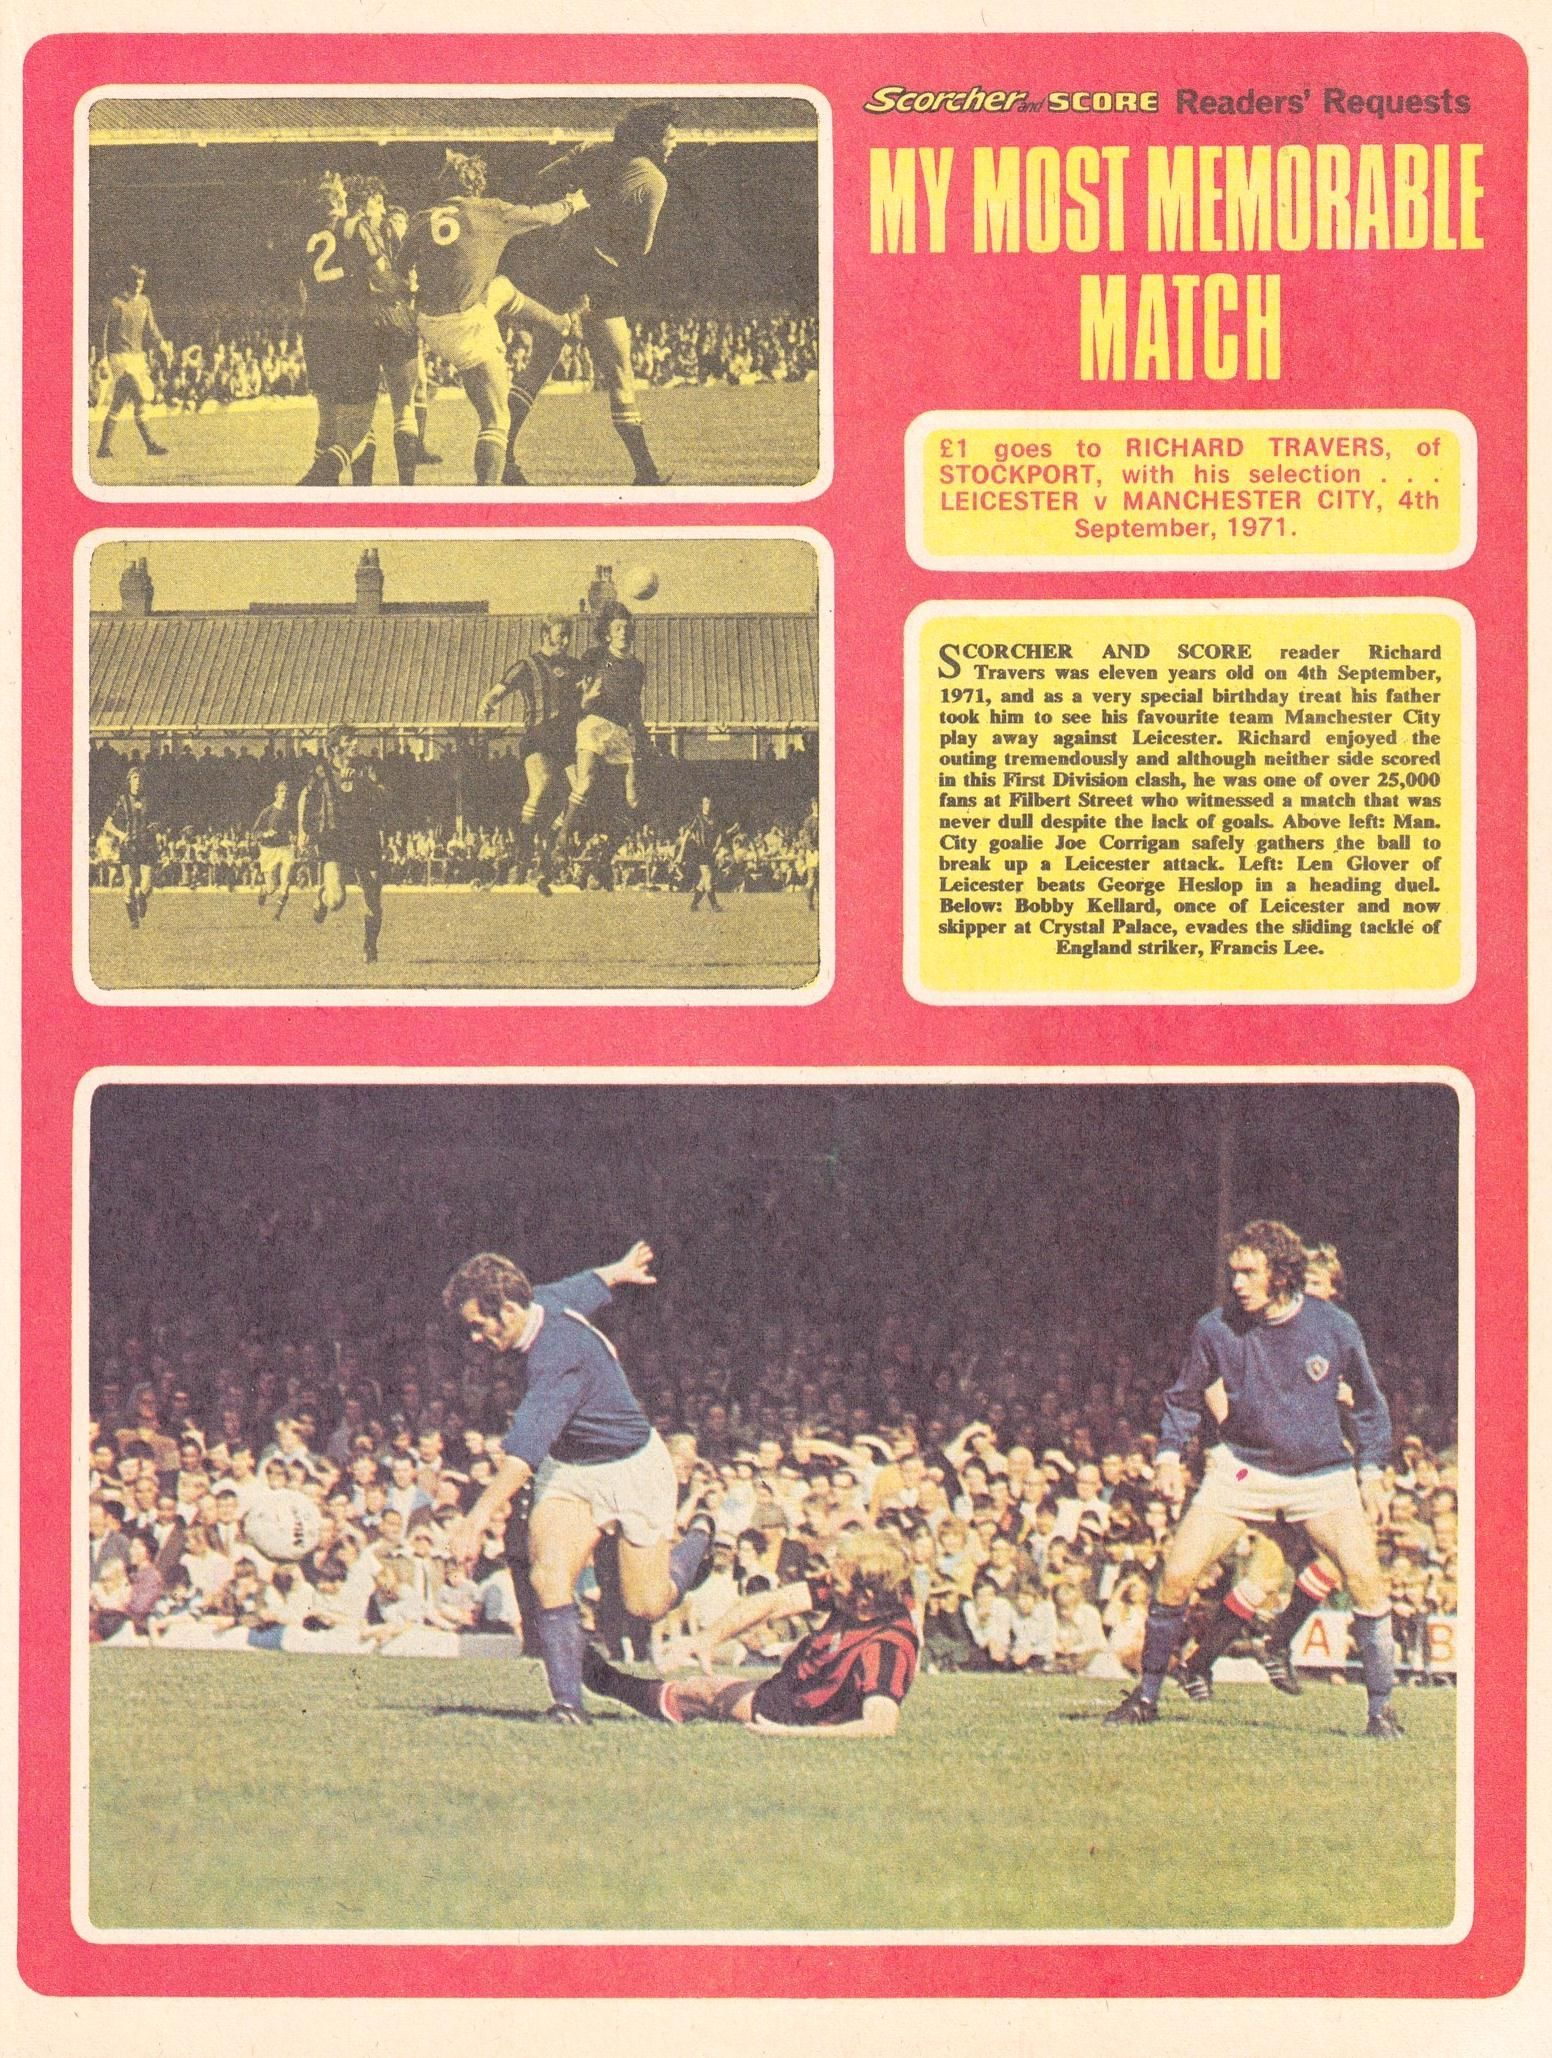 leicester away 1971 to 72 scorcher article 29 april 1972